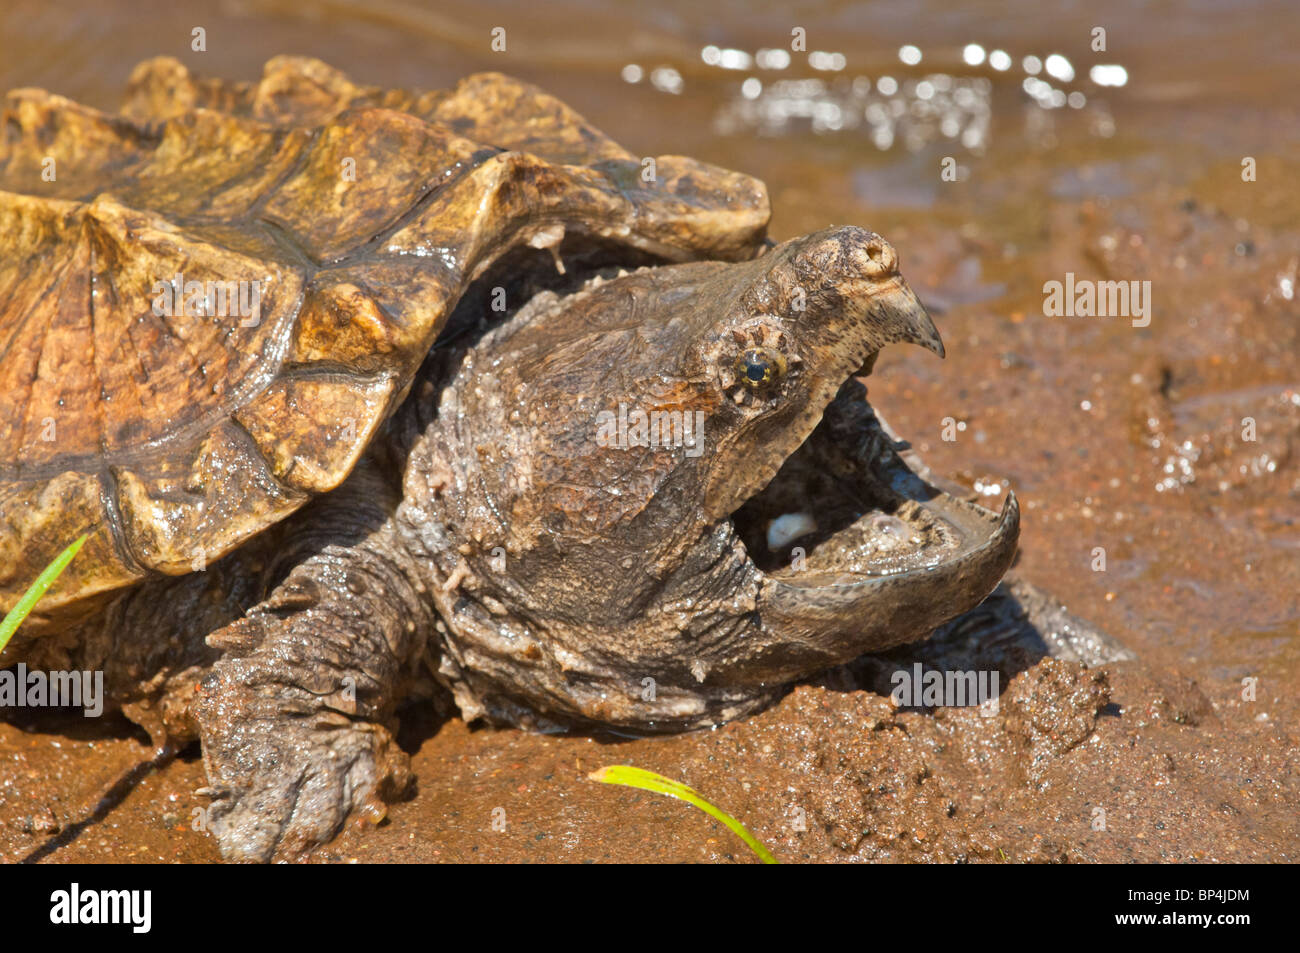 Alligator snapping turtle, Macrochemys temminckii, native to southern US waters Stock Photo